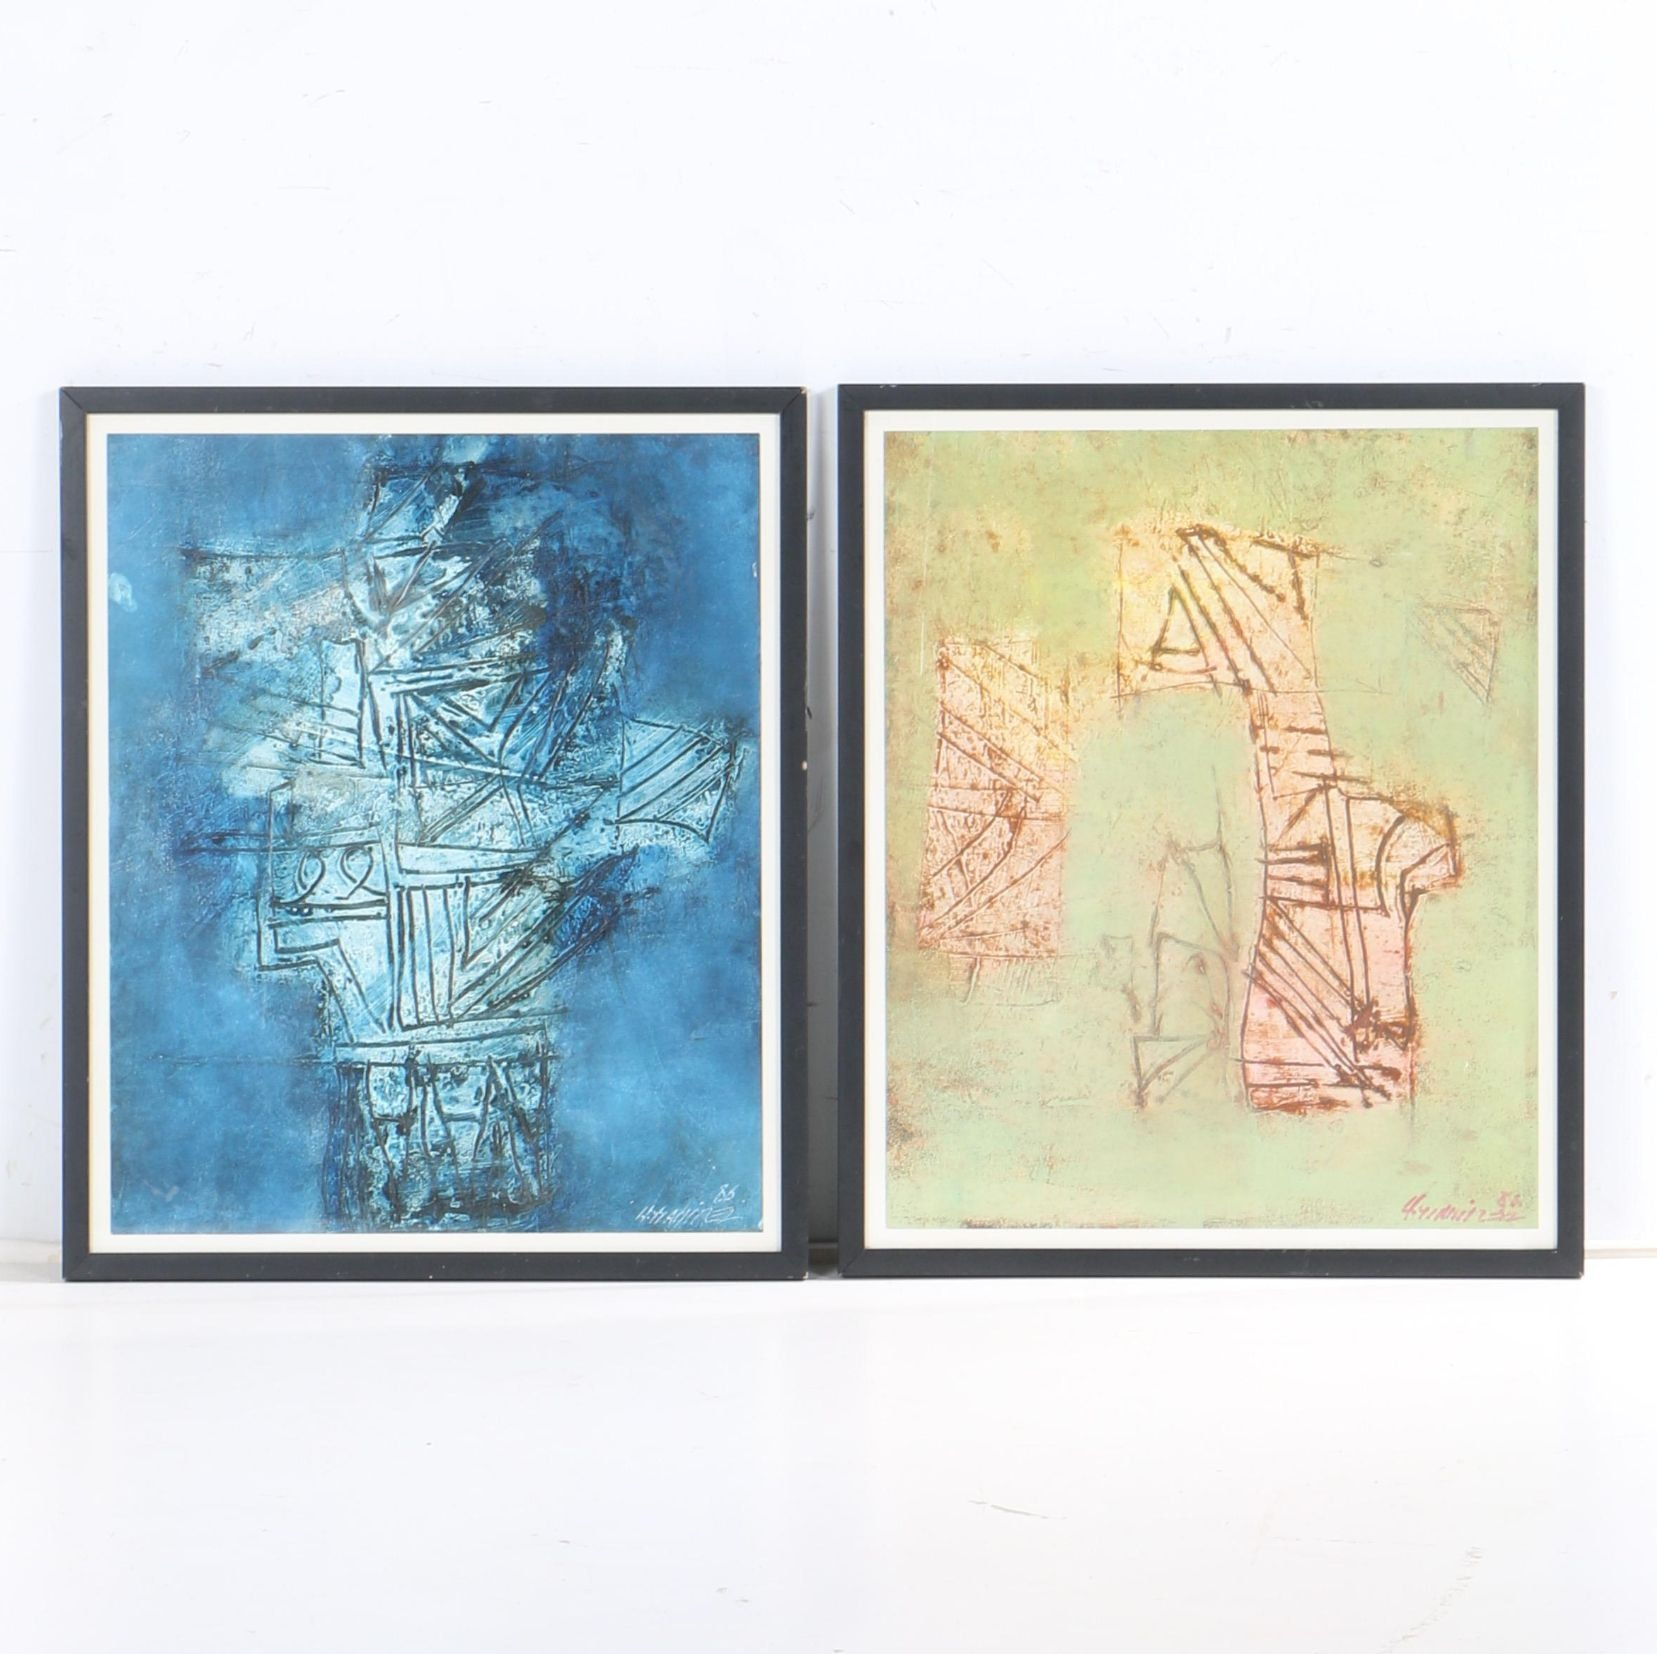 Acrylic Paintings on Paper of Abstract Composition